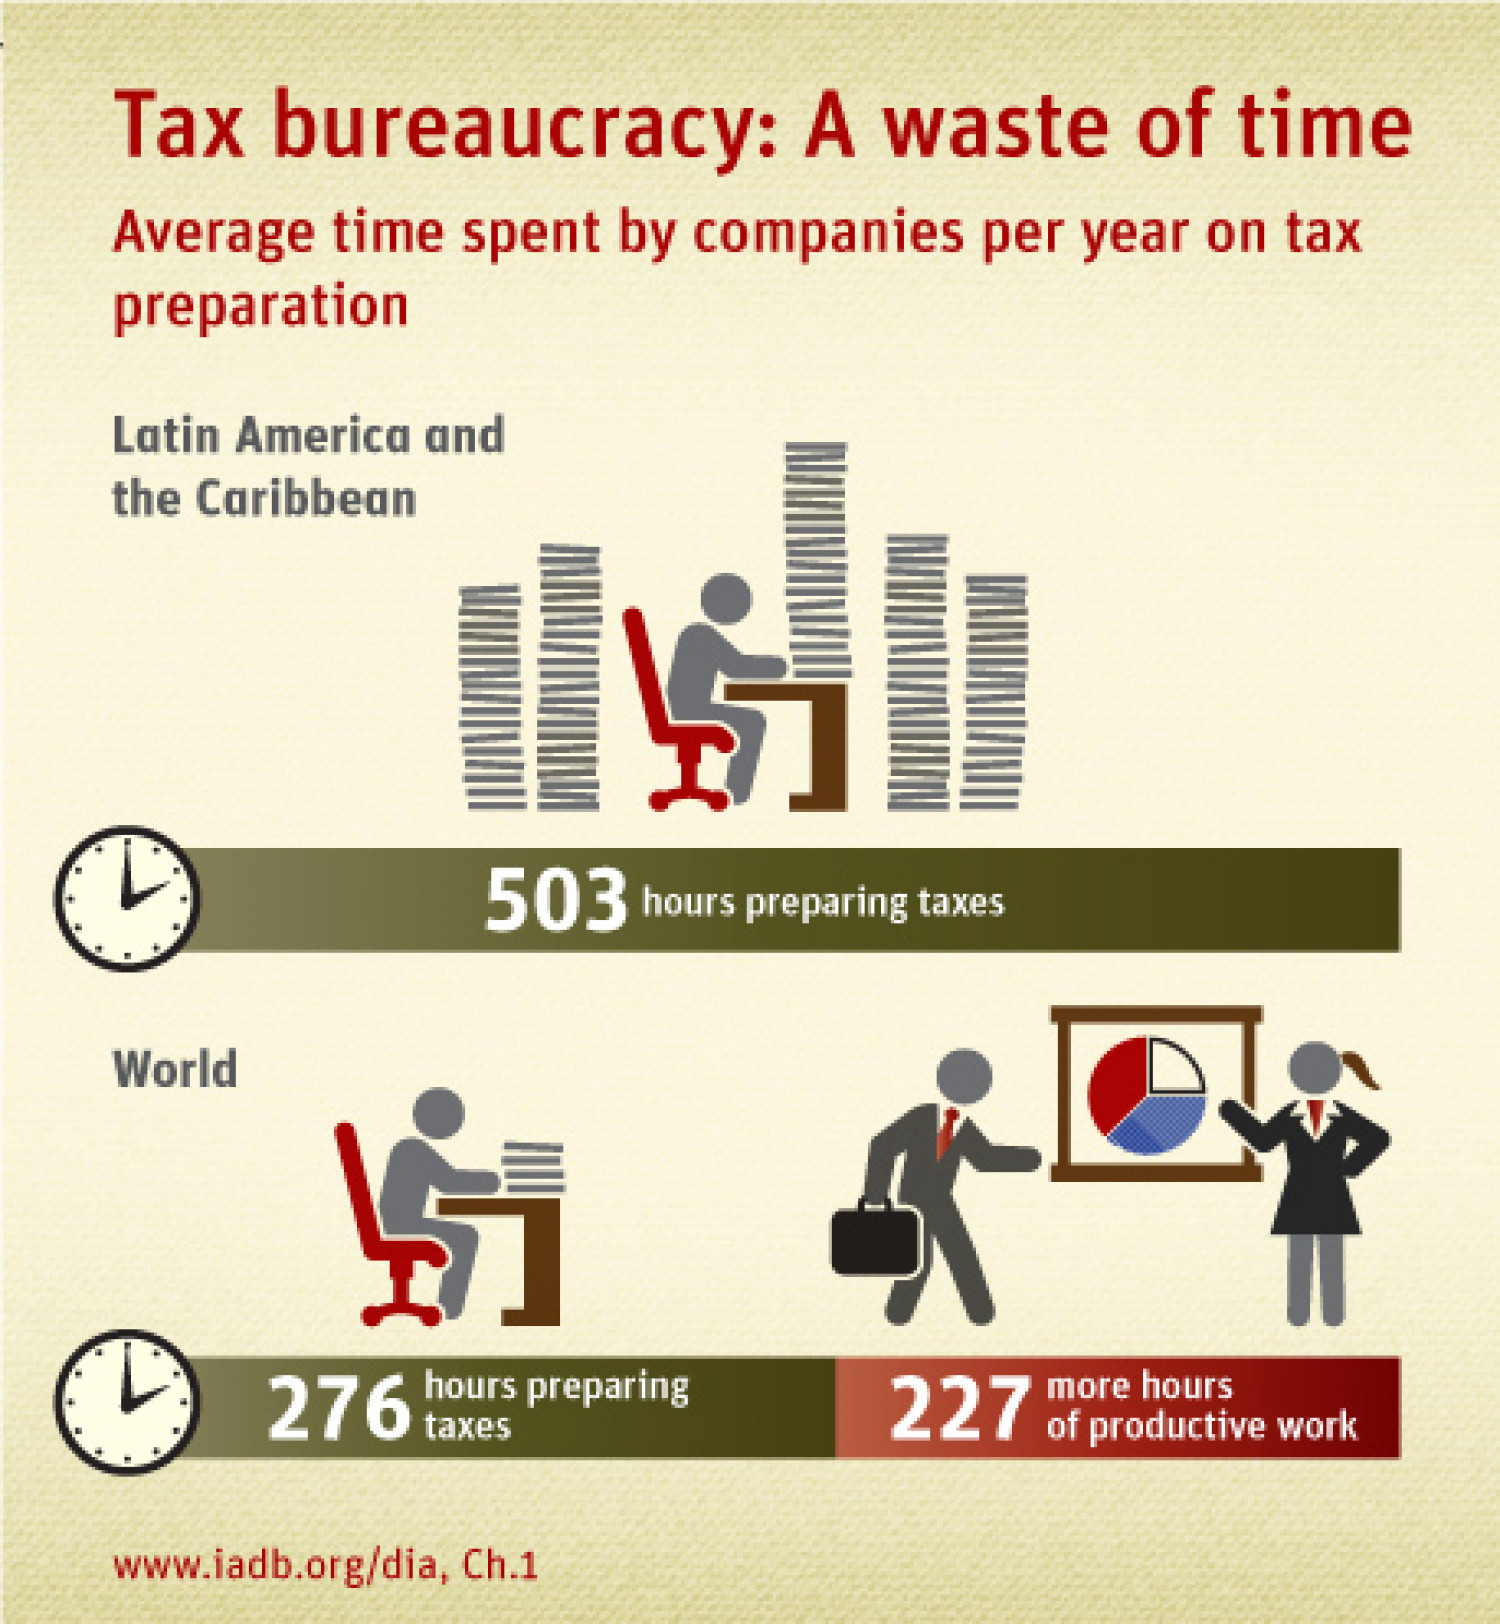 Tax bureaucracy: A waste of time Infographic